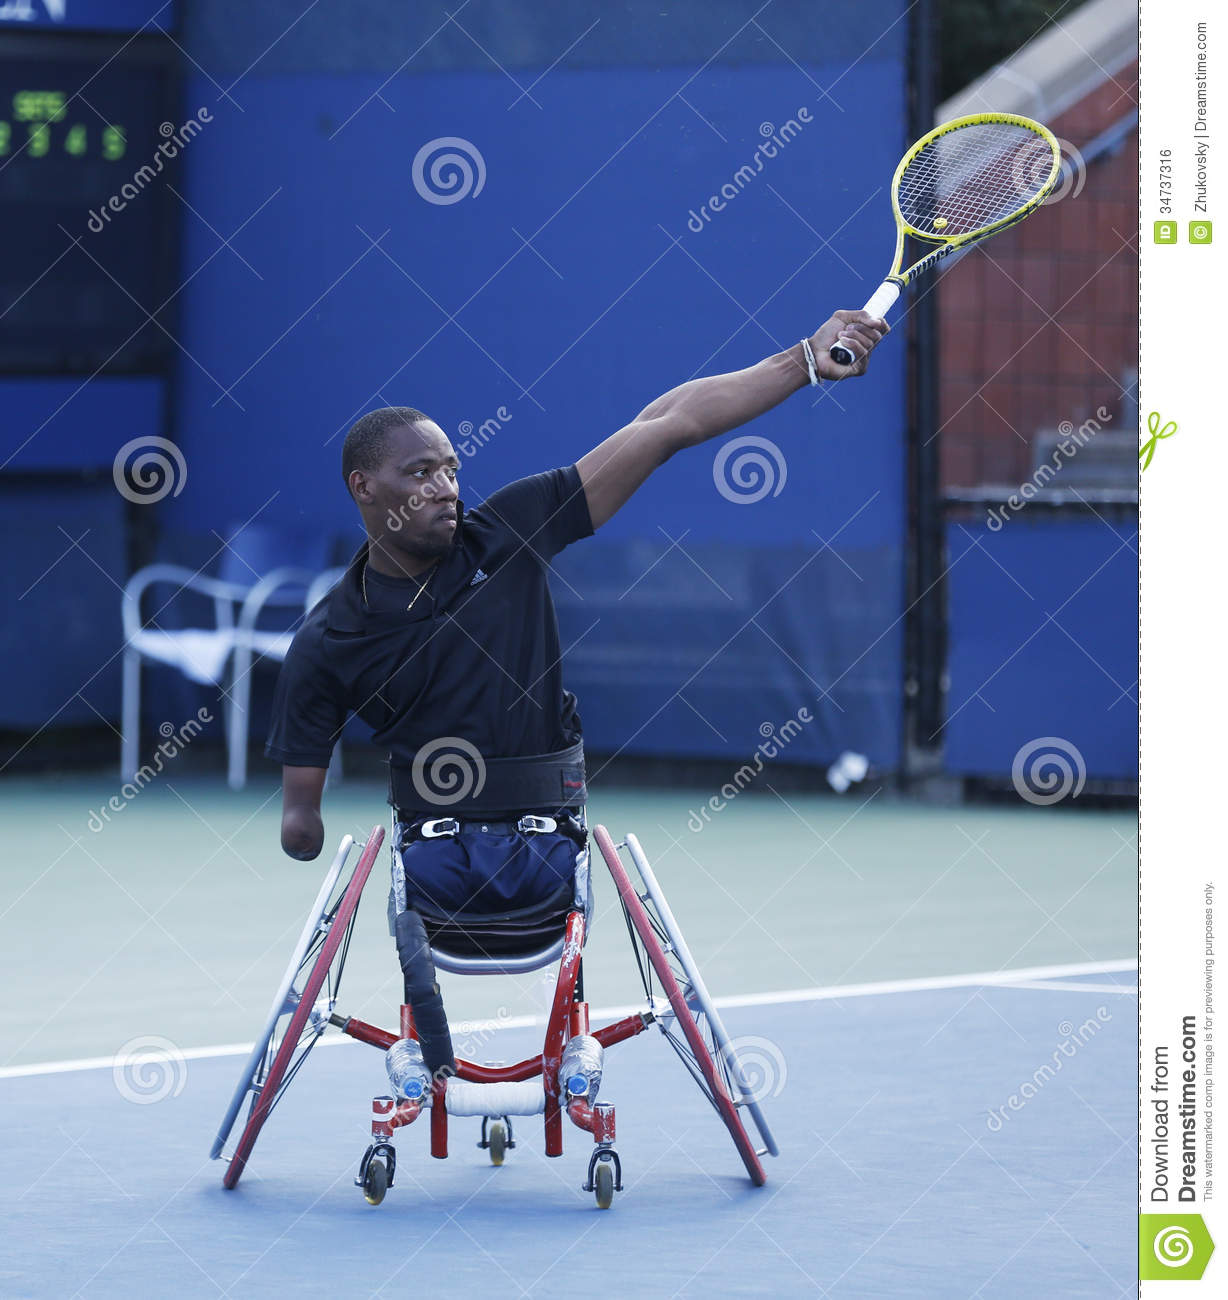 wheelchair quad couch and chairs tennis player lucas sithole from south africa during us open 2013 flushing ny september 8 singles match at billie jean king national